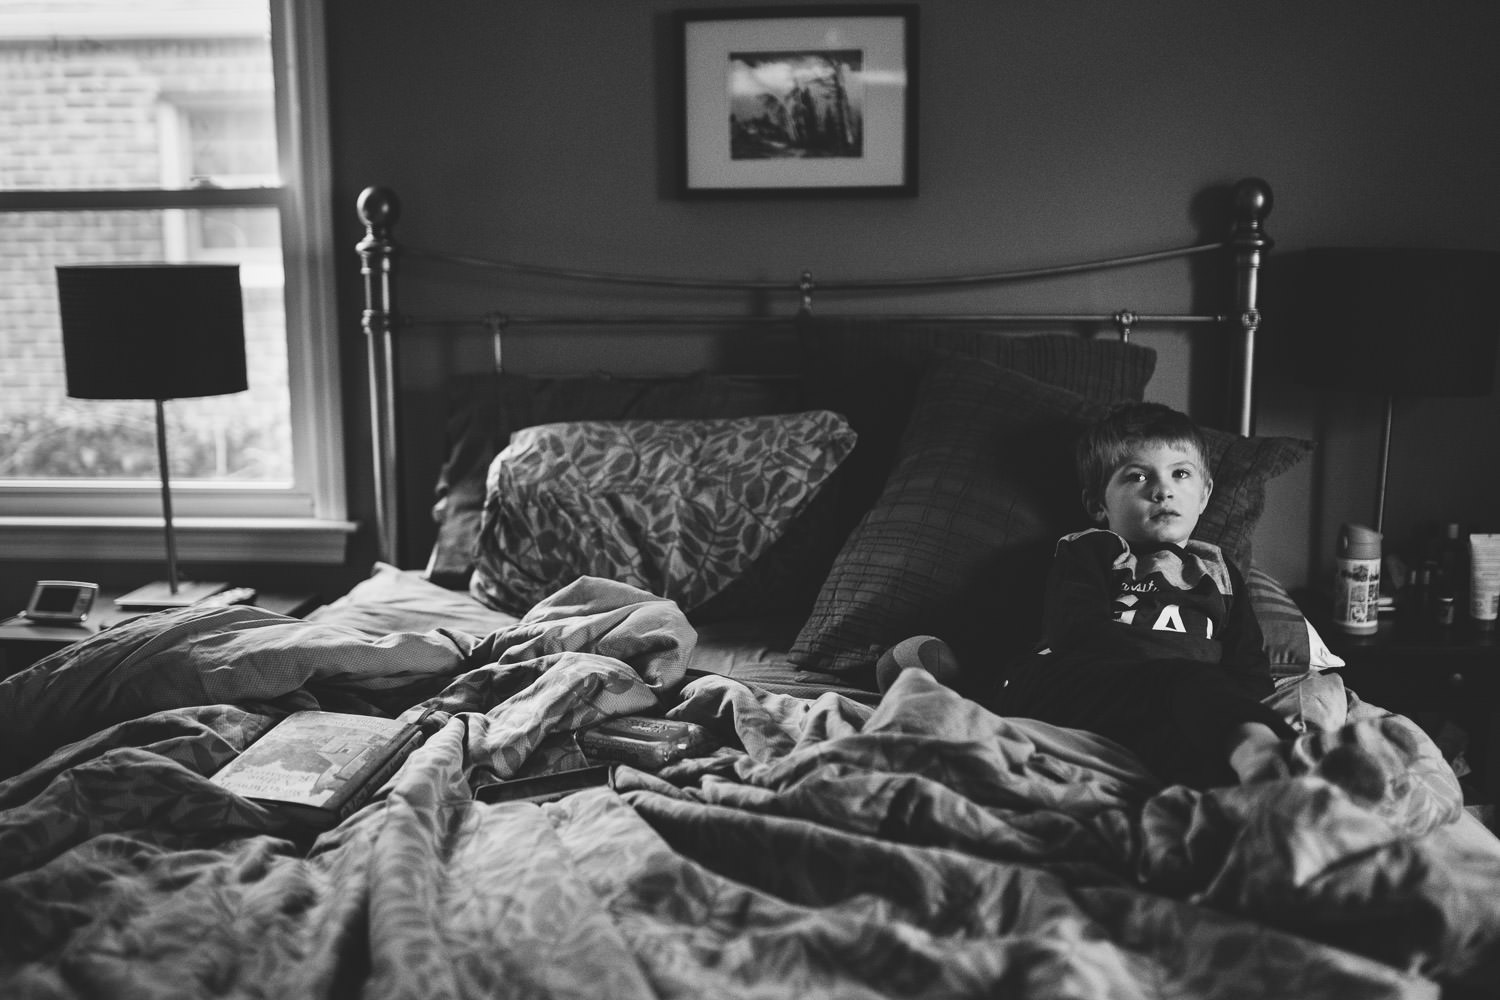 A little boy watches TV from his parents' bed.